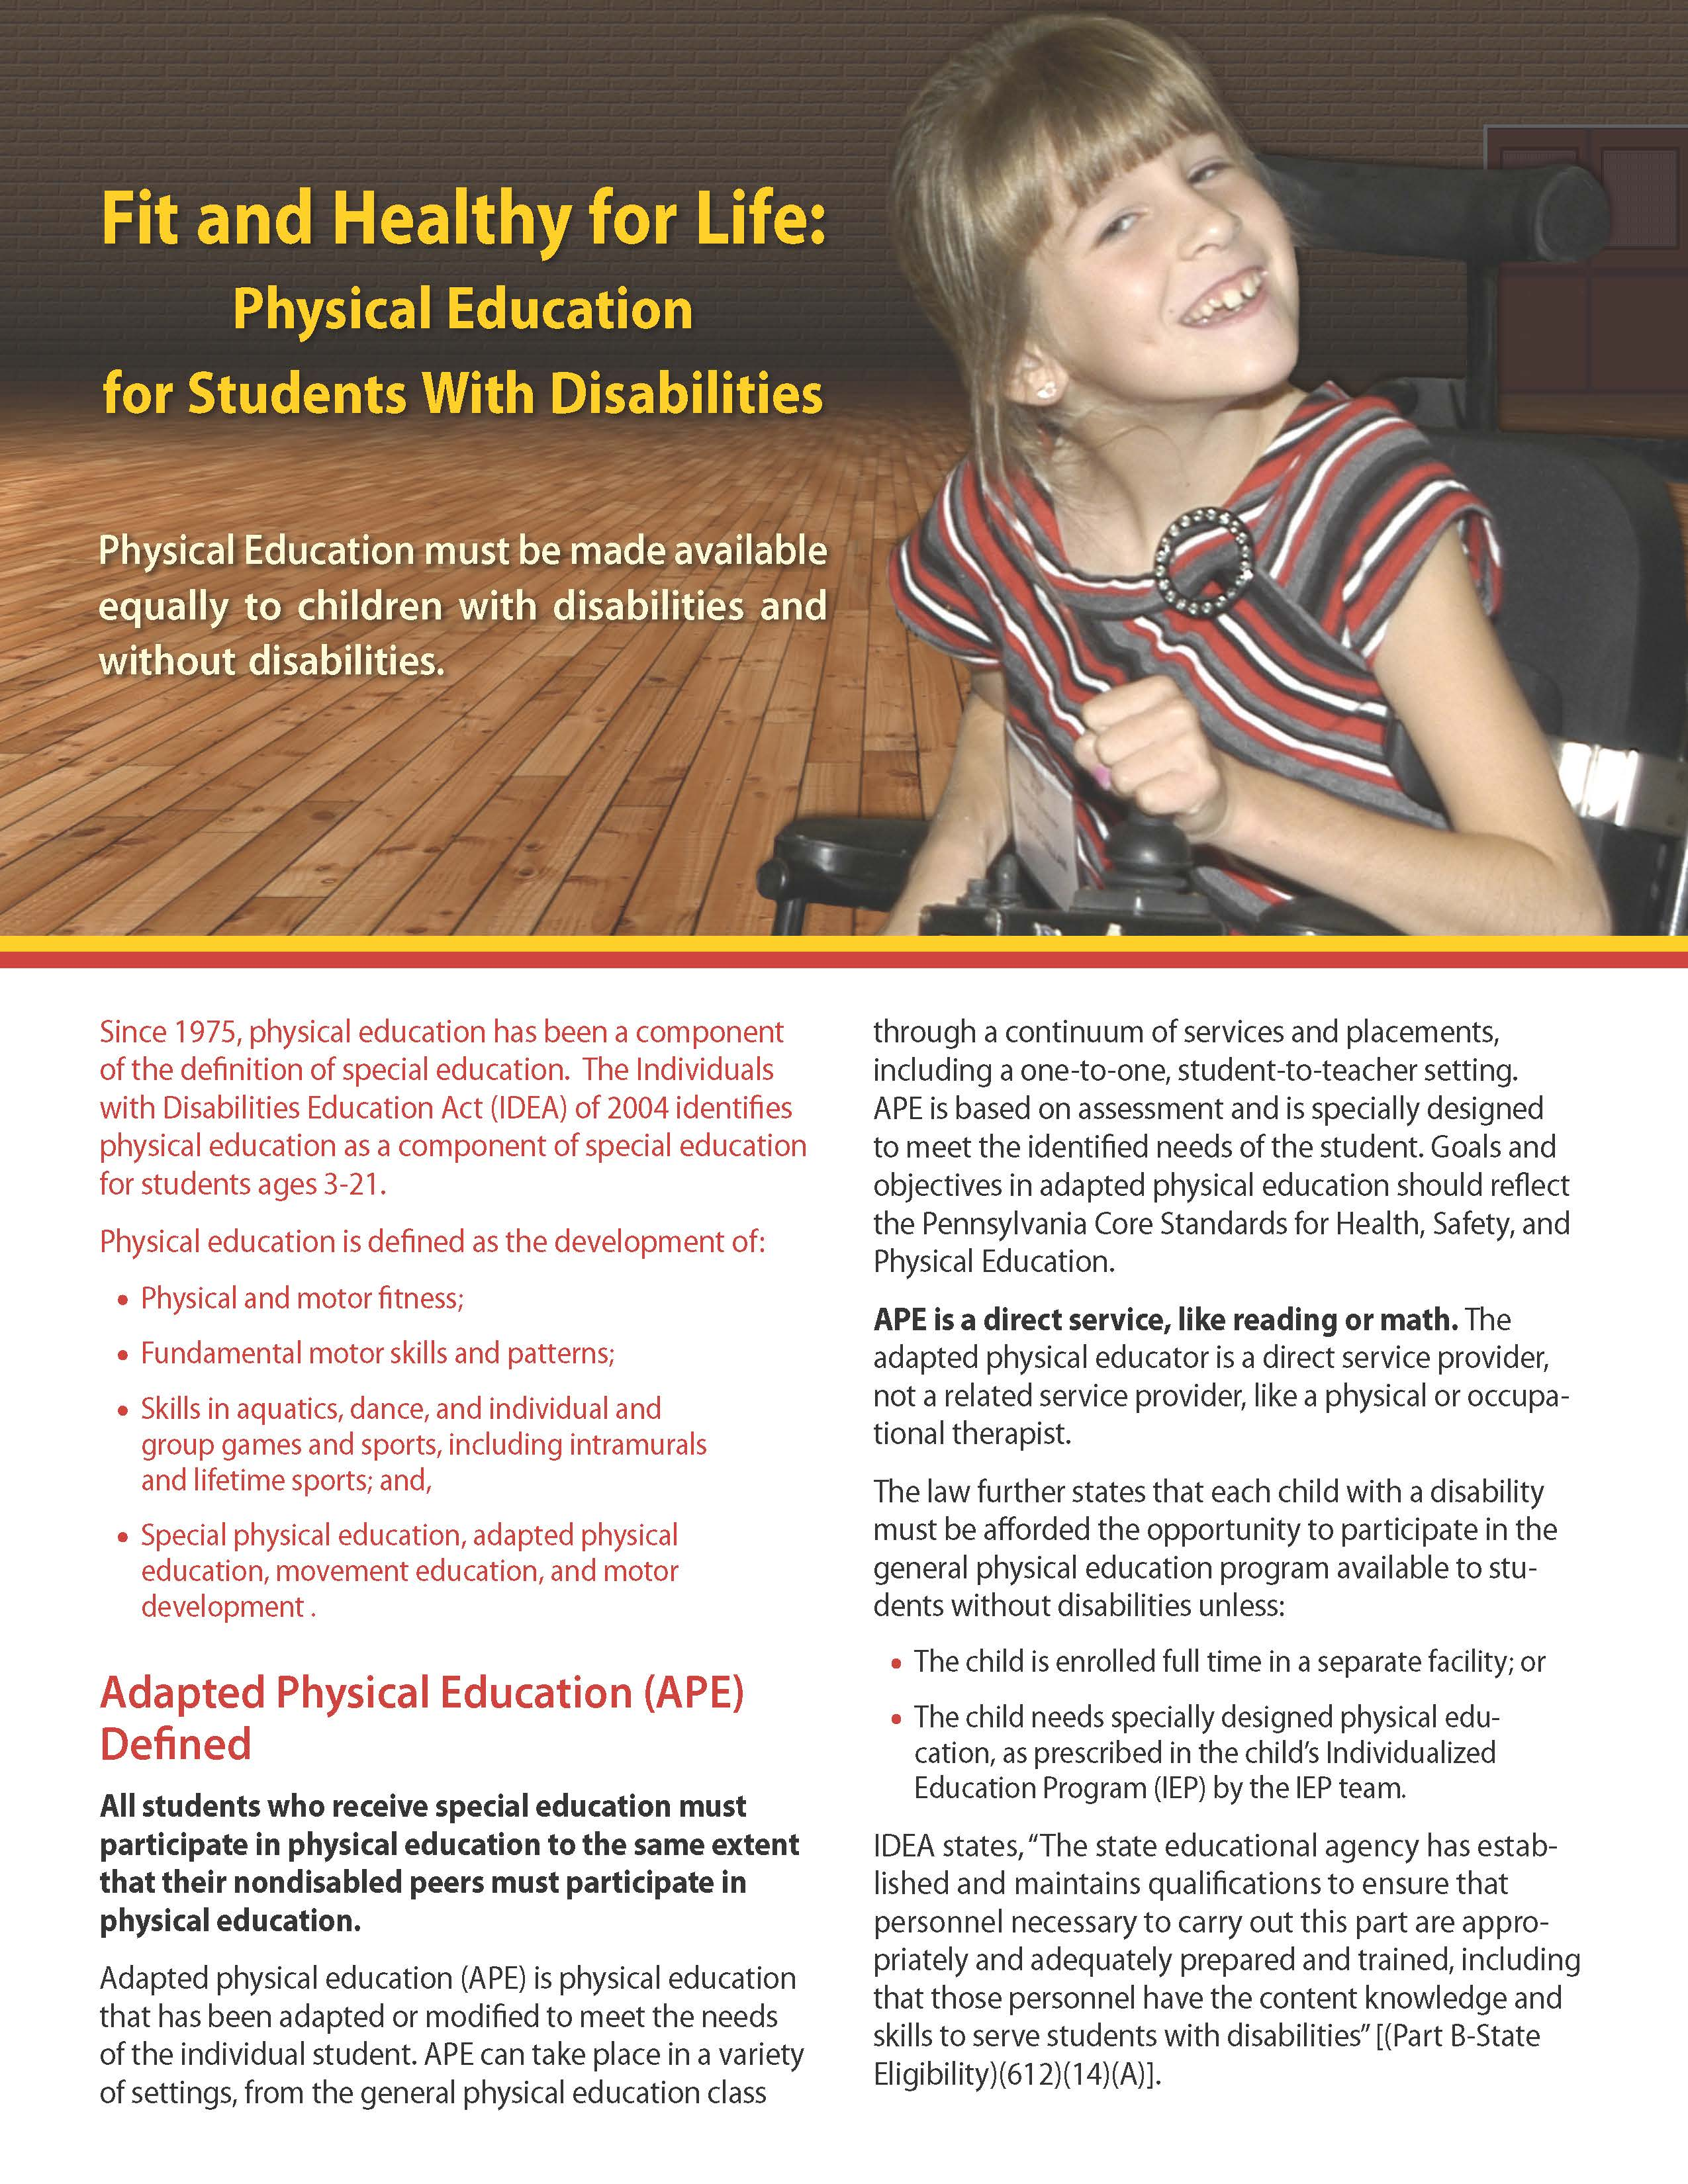 Fit and Healthy for Life: Physical Education for Students With Disabilities